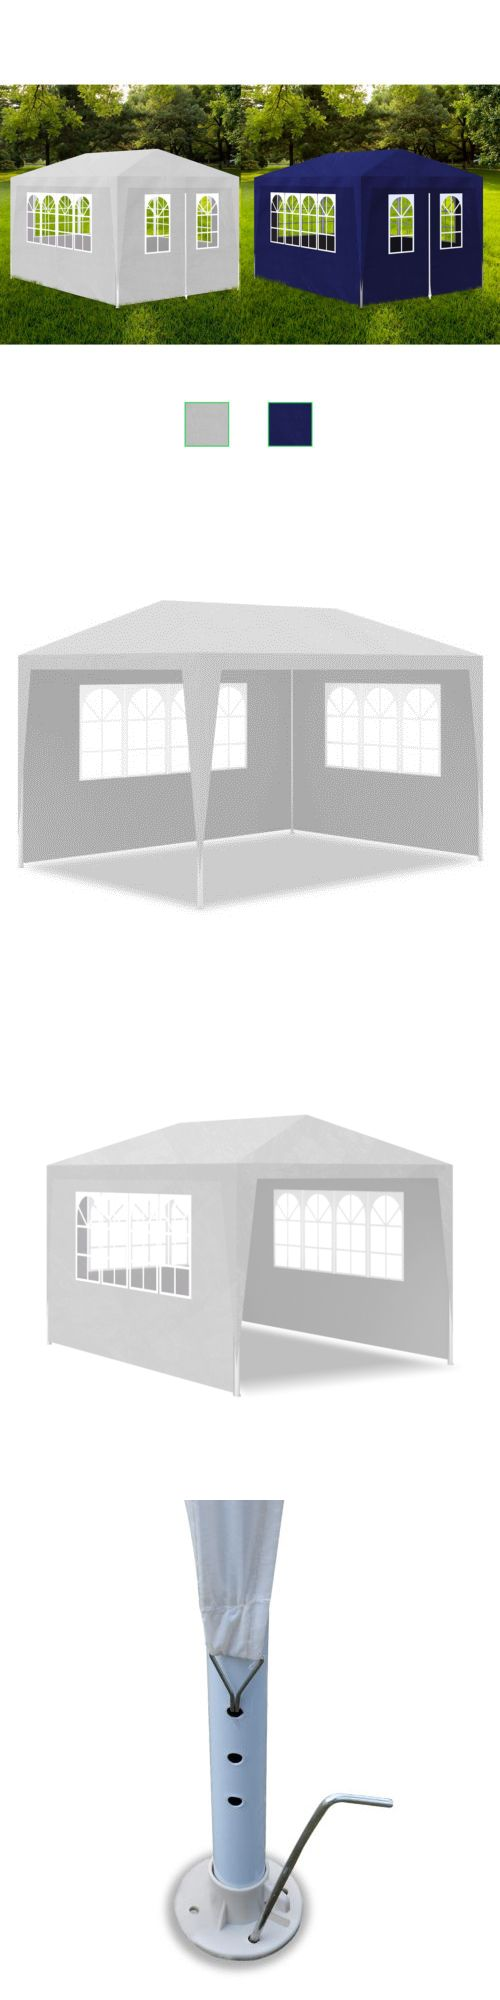 Awnings and Canopies 180992: 10 X 13 White Blue Outdoor Wedding Party Tent Gazebo Canopy With 4 Side Walls -> BUY IT NOW ONLY: $73.99 on eBay!